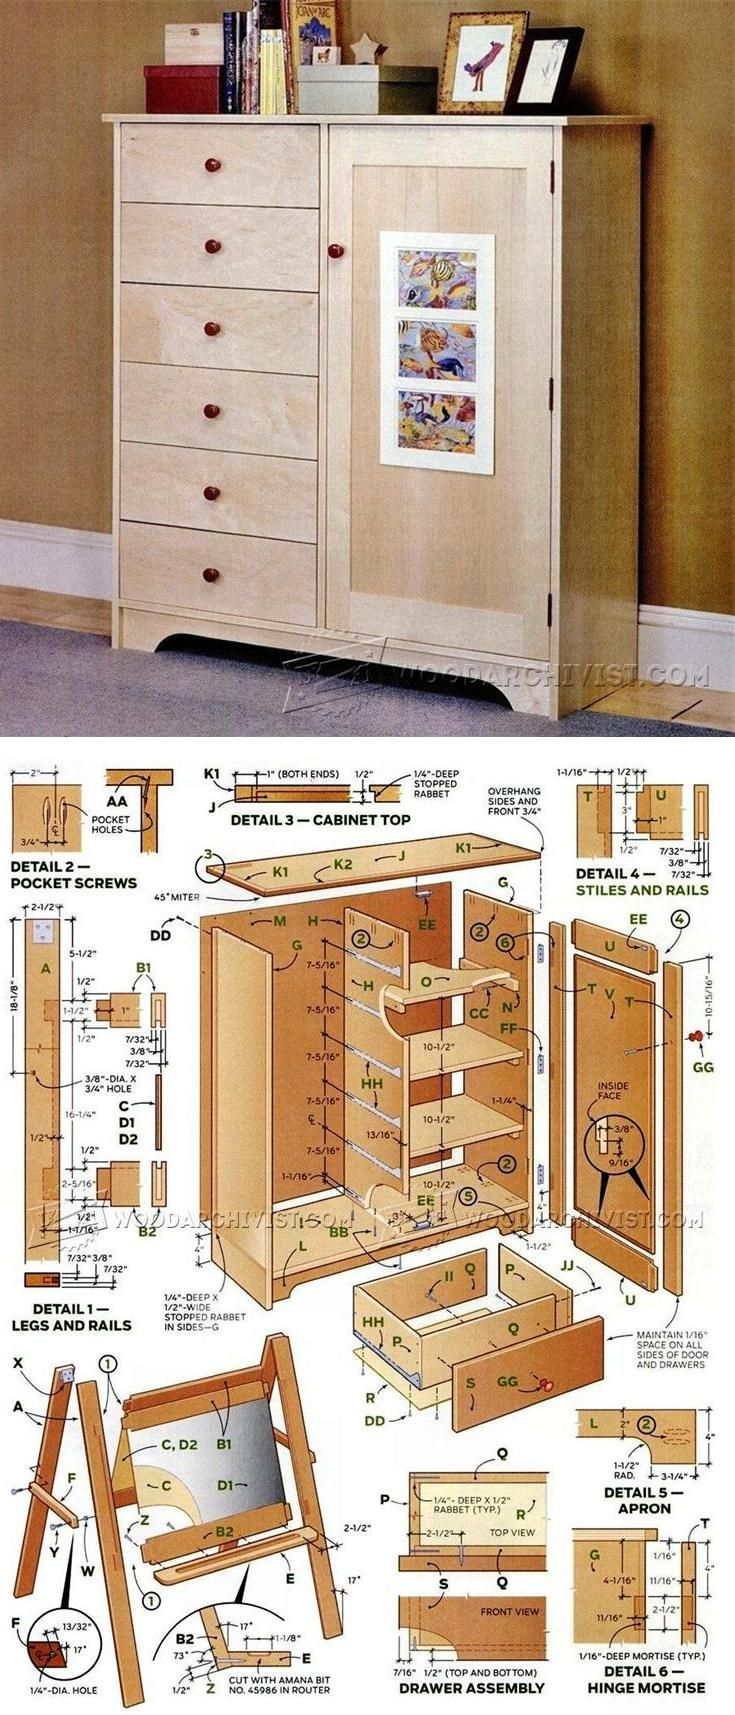 Storage Cabinet Plans - Furniture Plans and Projects | WoodArchivist.com